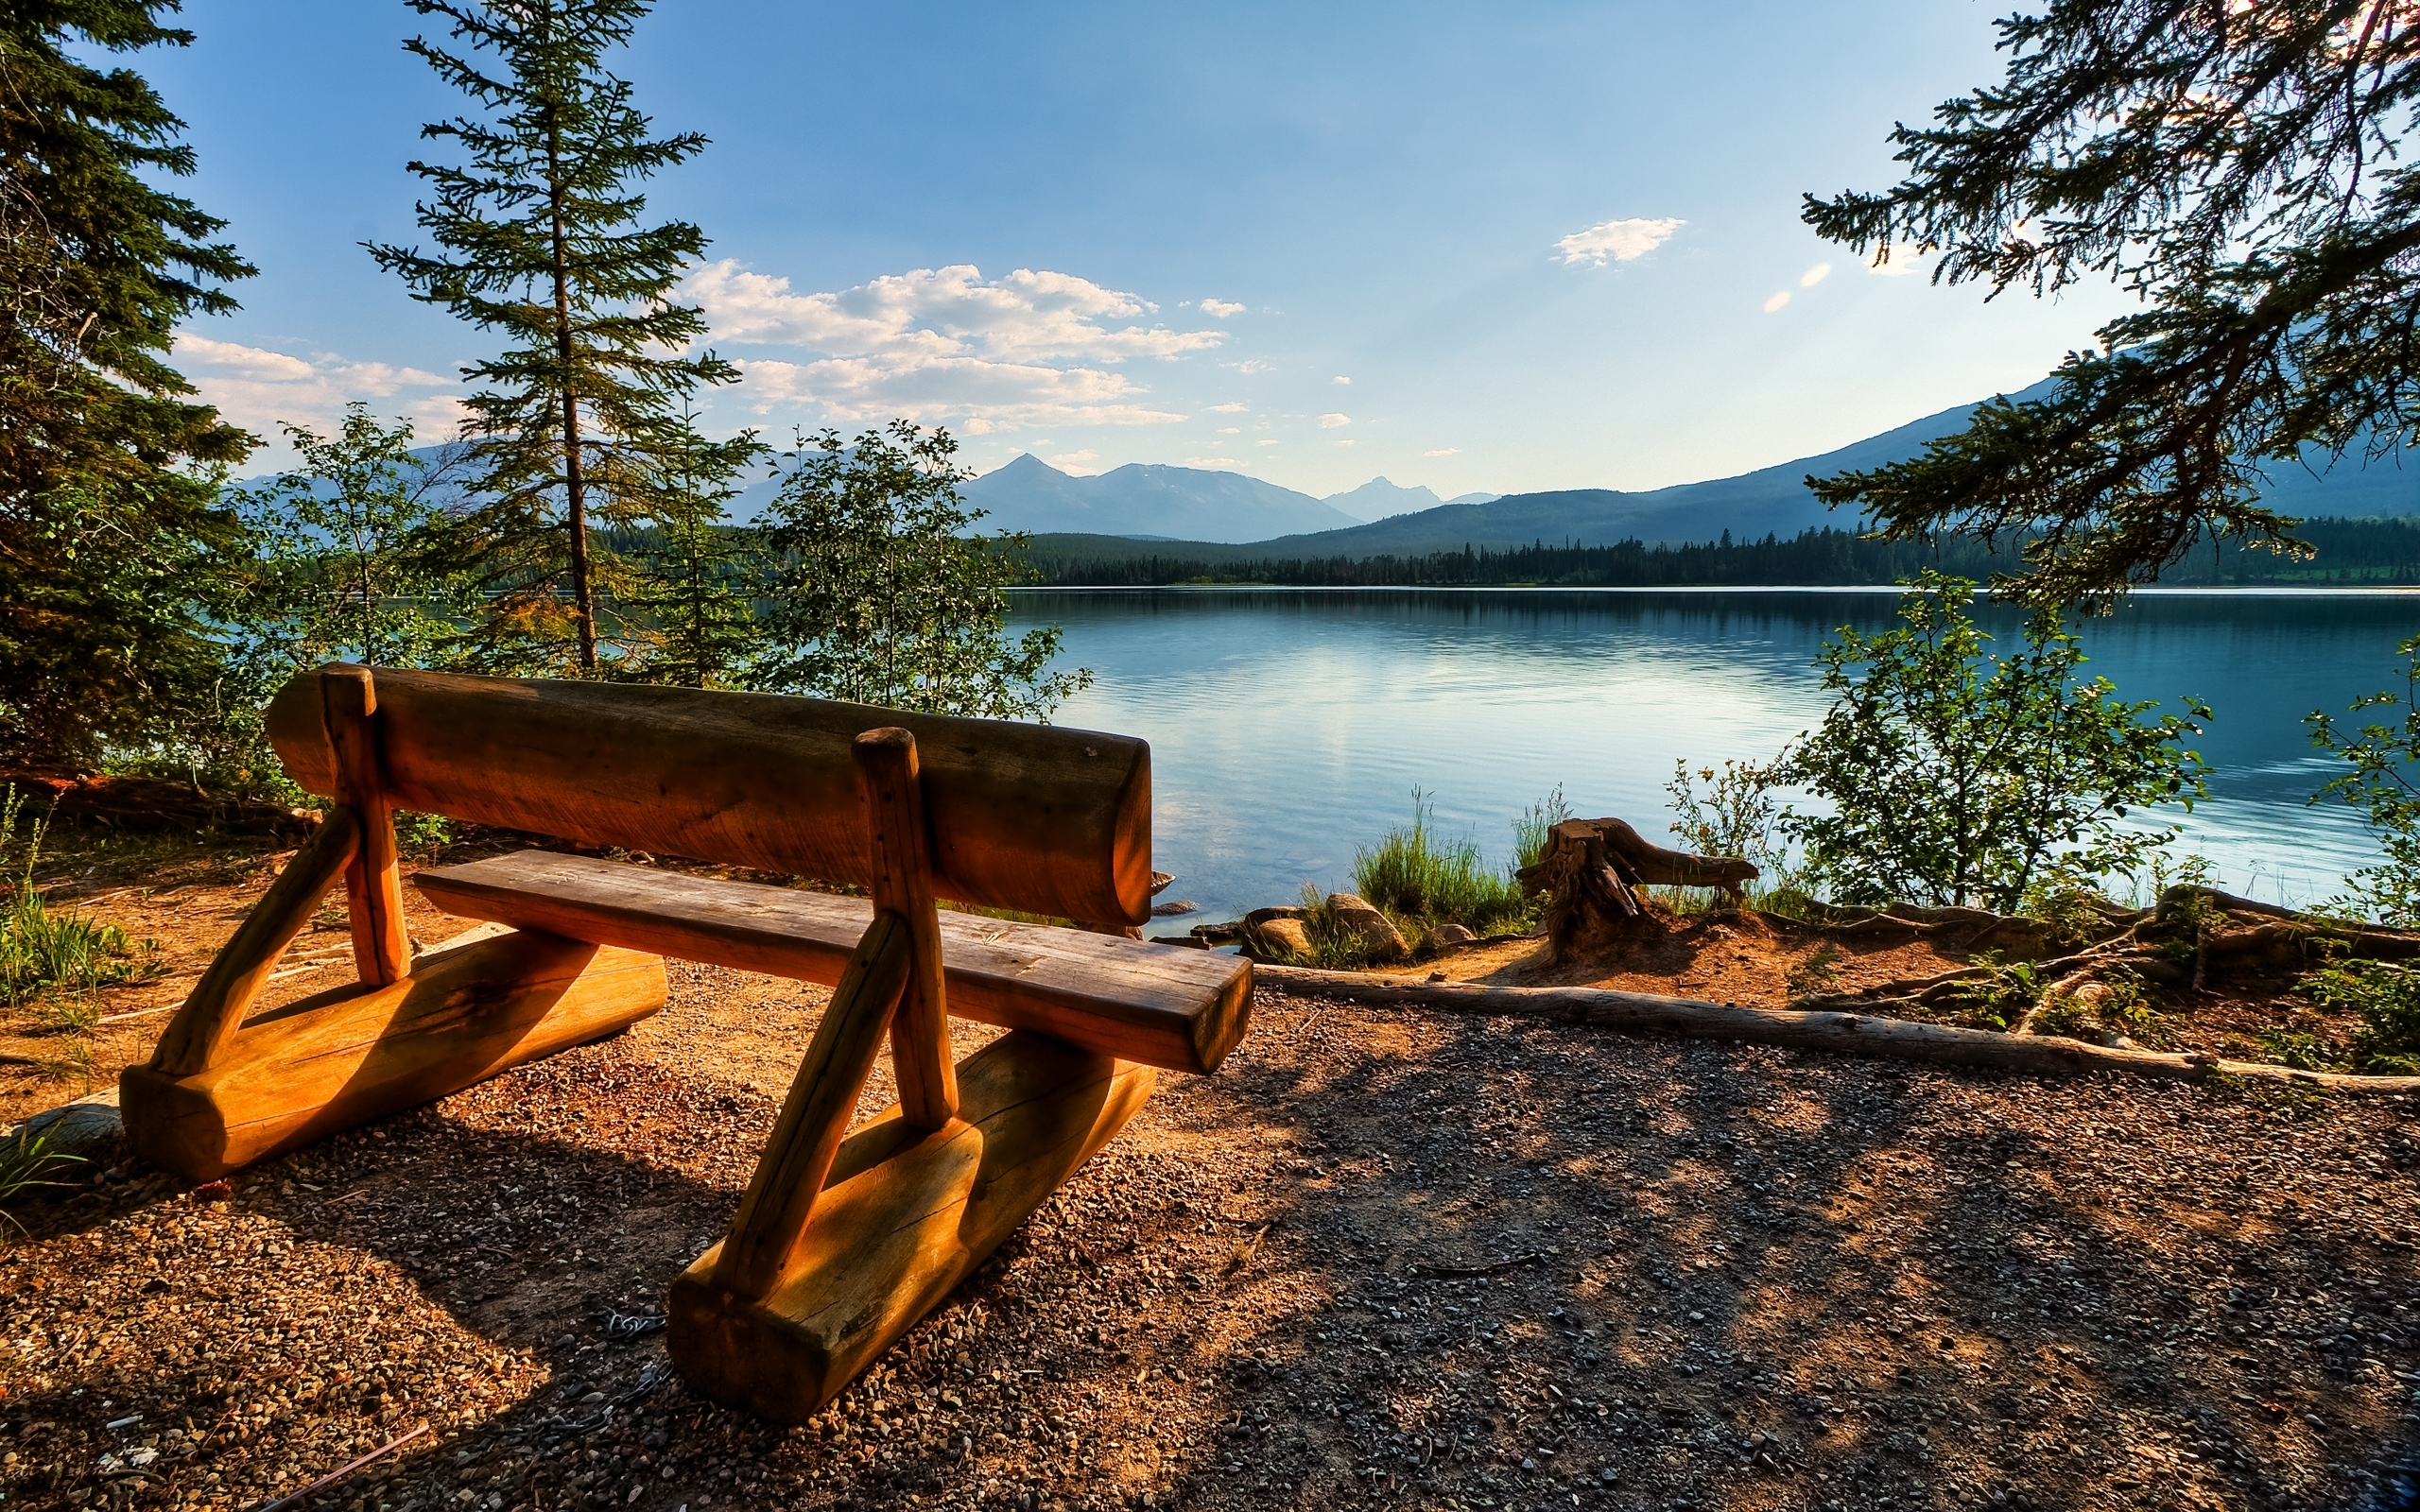 43752 download wallpaper Lakes, Landscape, Nature screensavers and pictures for free